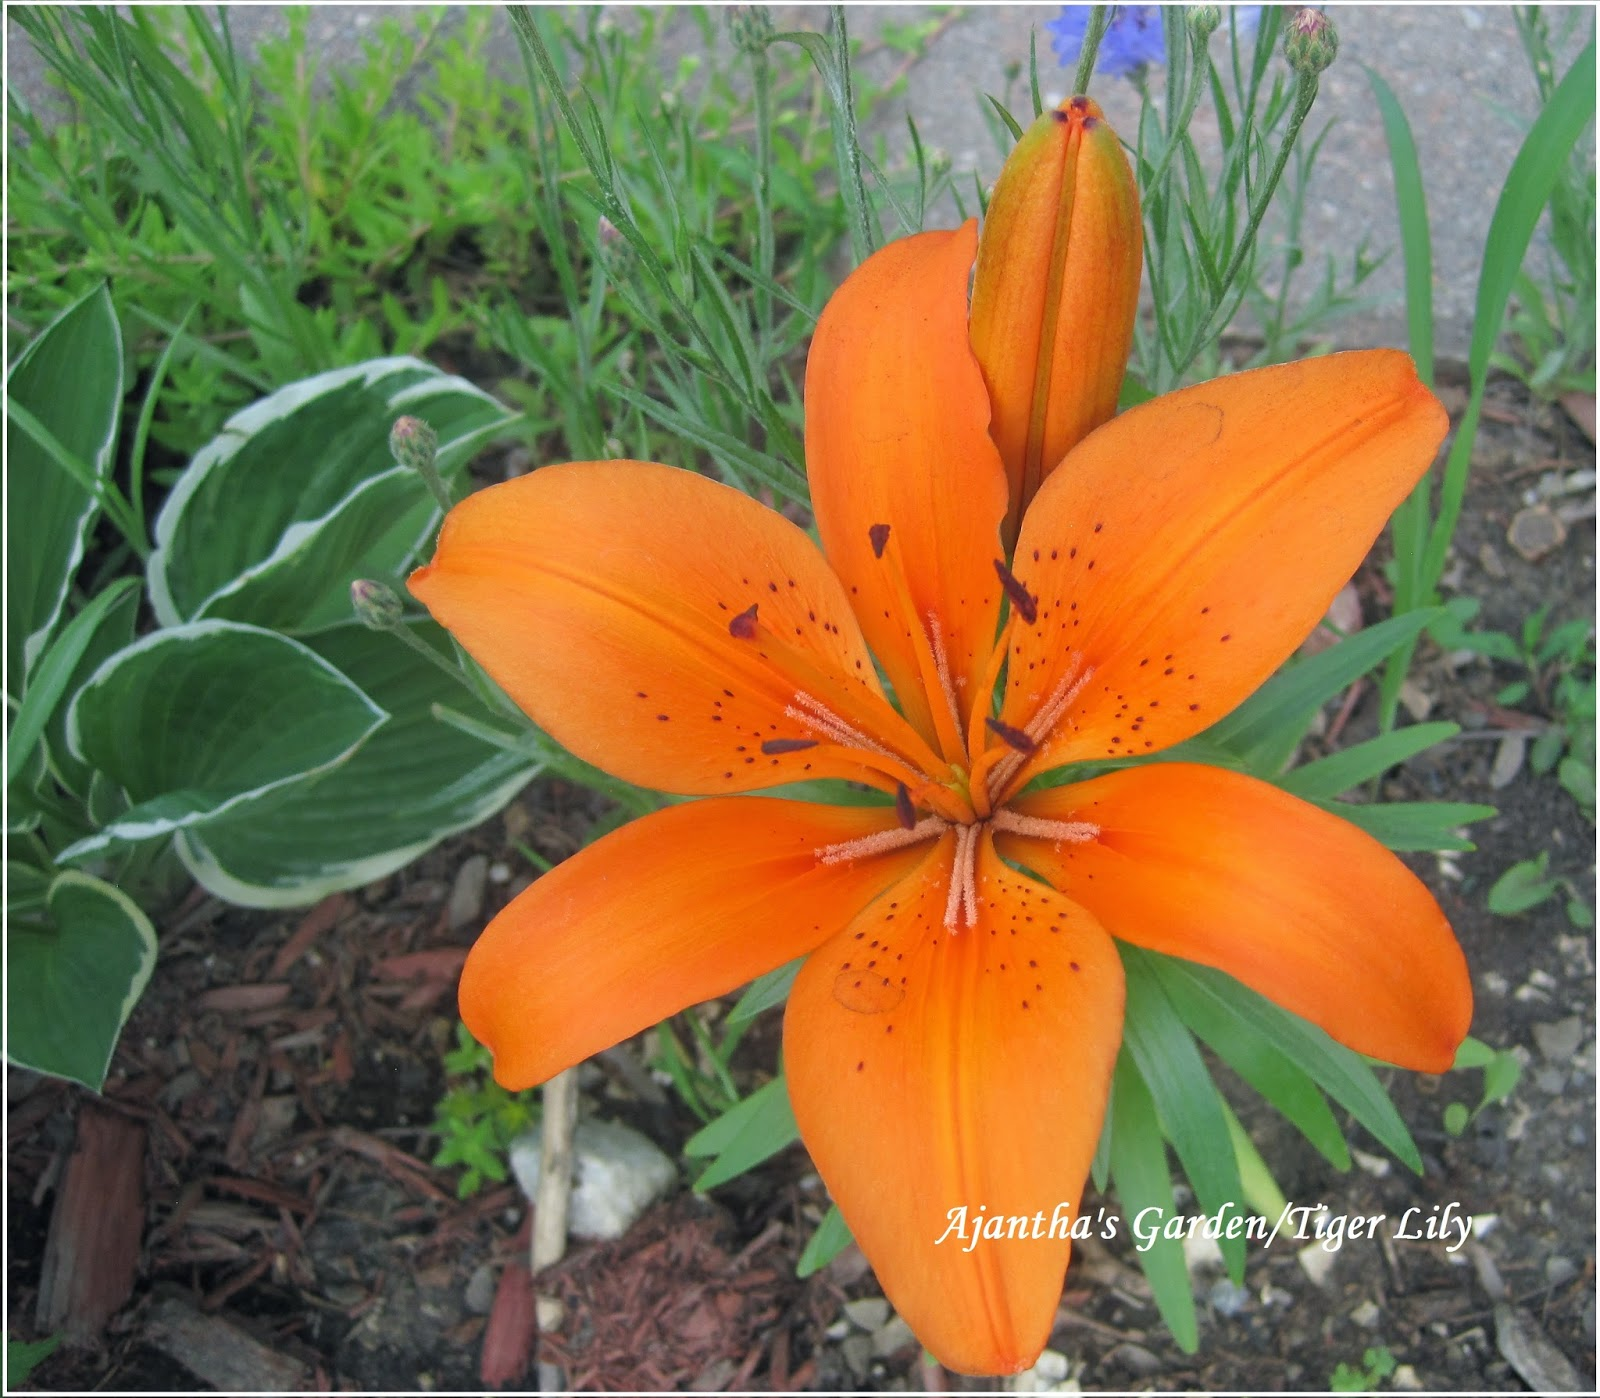 Ajantha's Garden/Tiger Lily